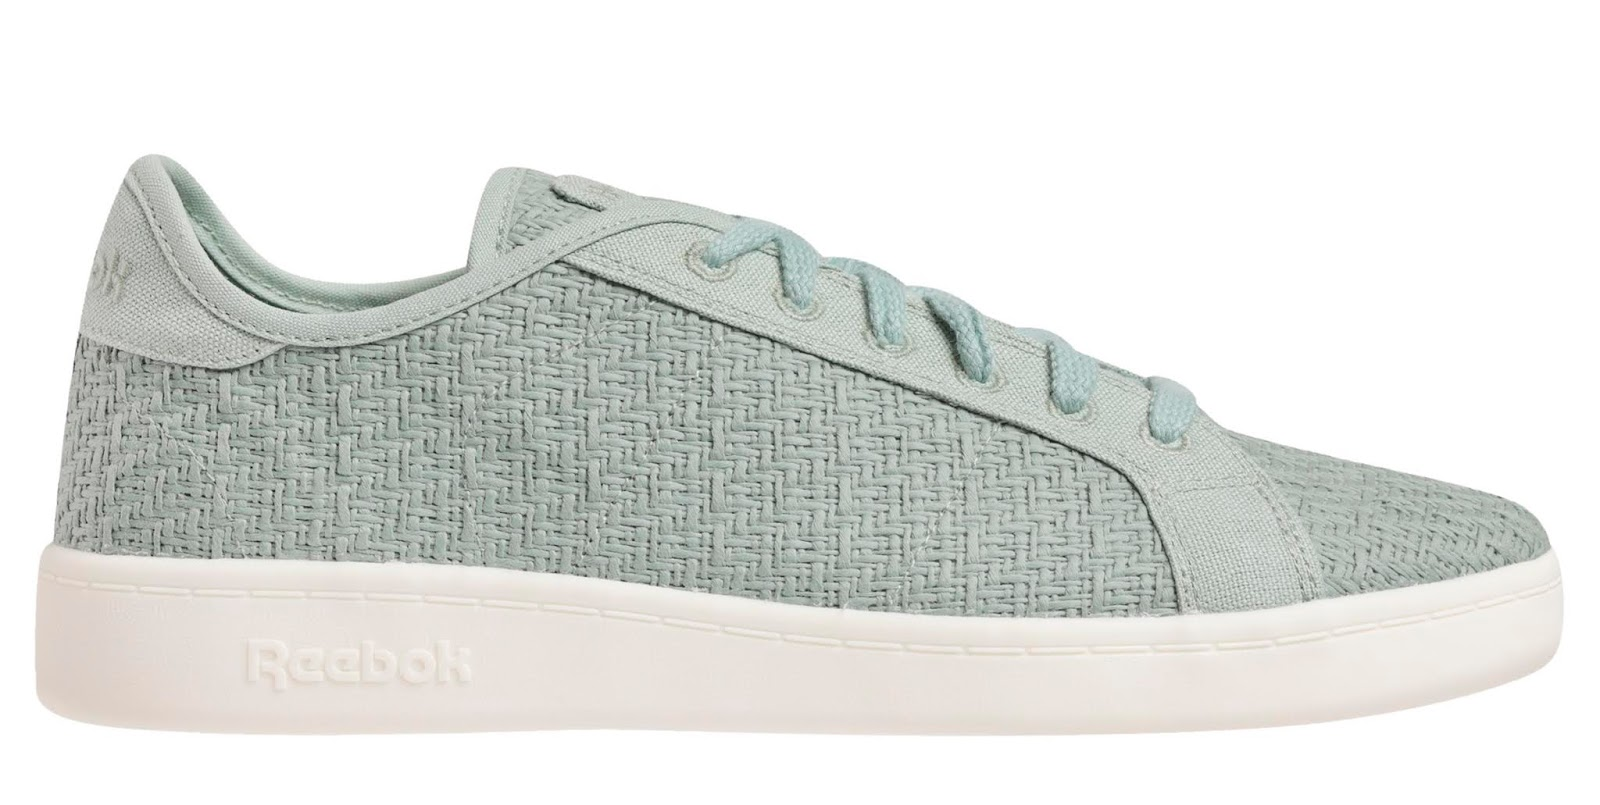 Modelo verde de zapatillas Reebok Cotton Corn